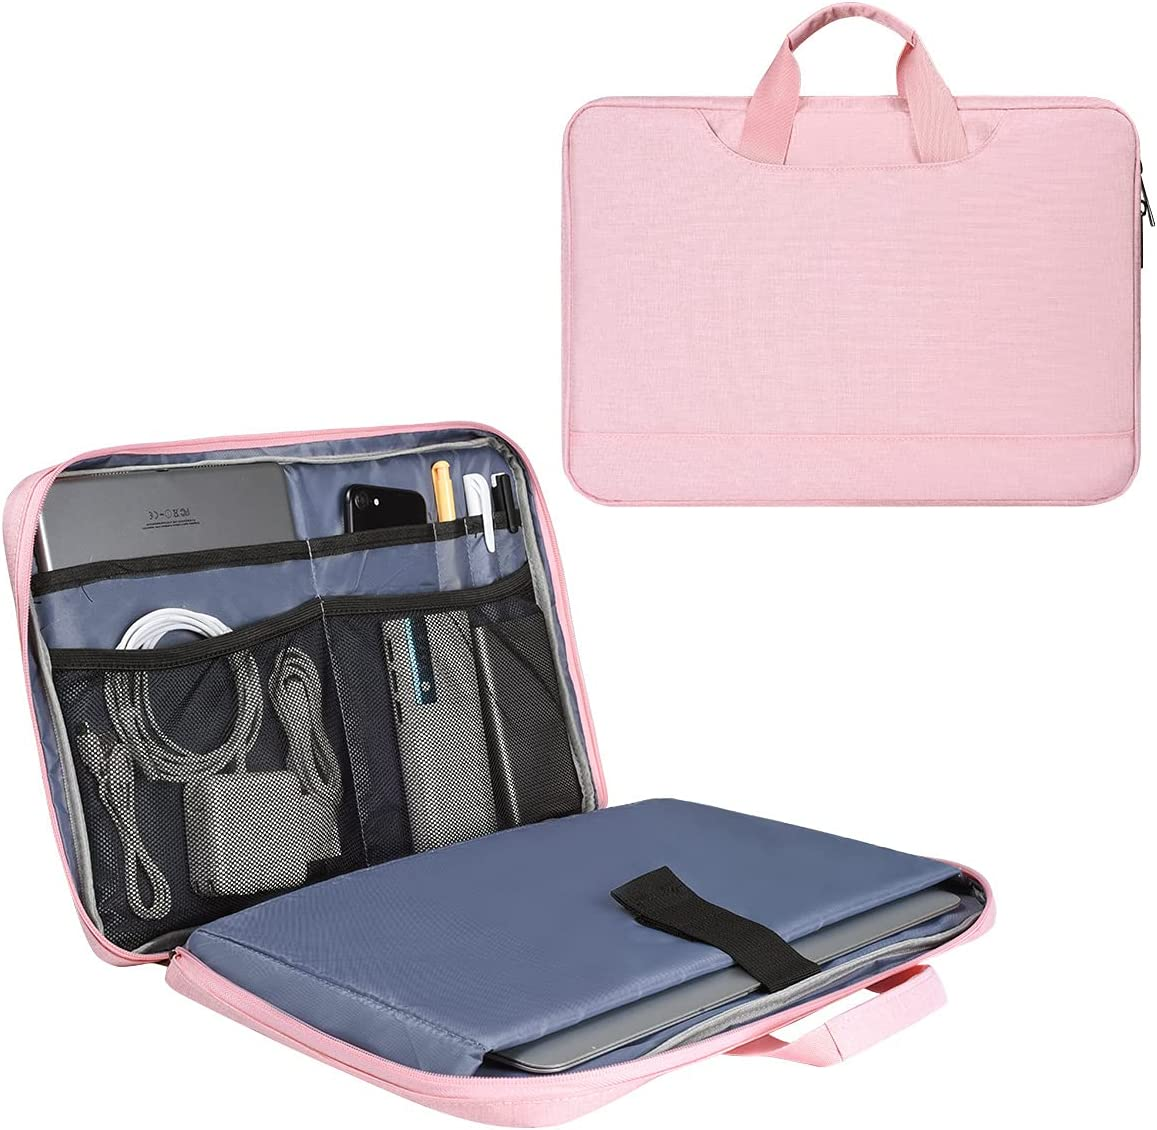 11.6-13 Inch Laptop Bag Sleeve for Women Ladies Travel Briefcase with Organizer for Lenovo Chromebook C330, Macbook Air 13 A2337 A2179, Acer Chromebook Spin 311, Surface Pro 7/6/5/4 HP Dell Case, Pink